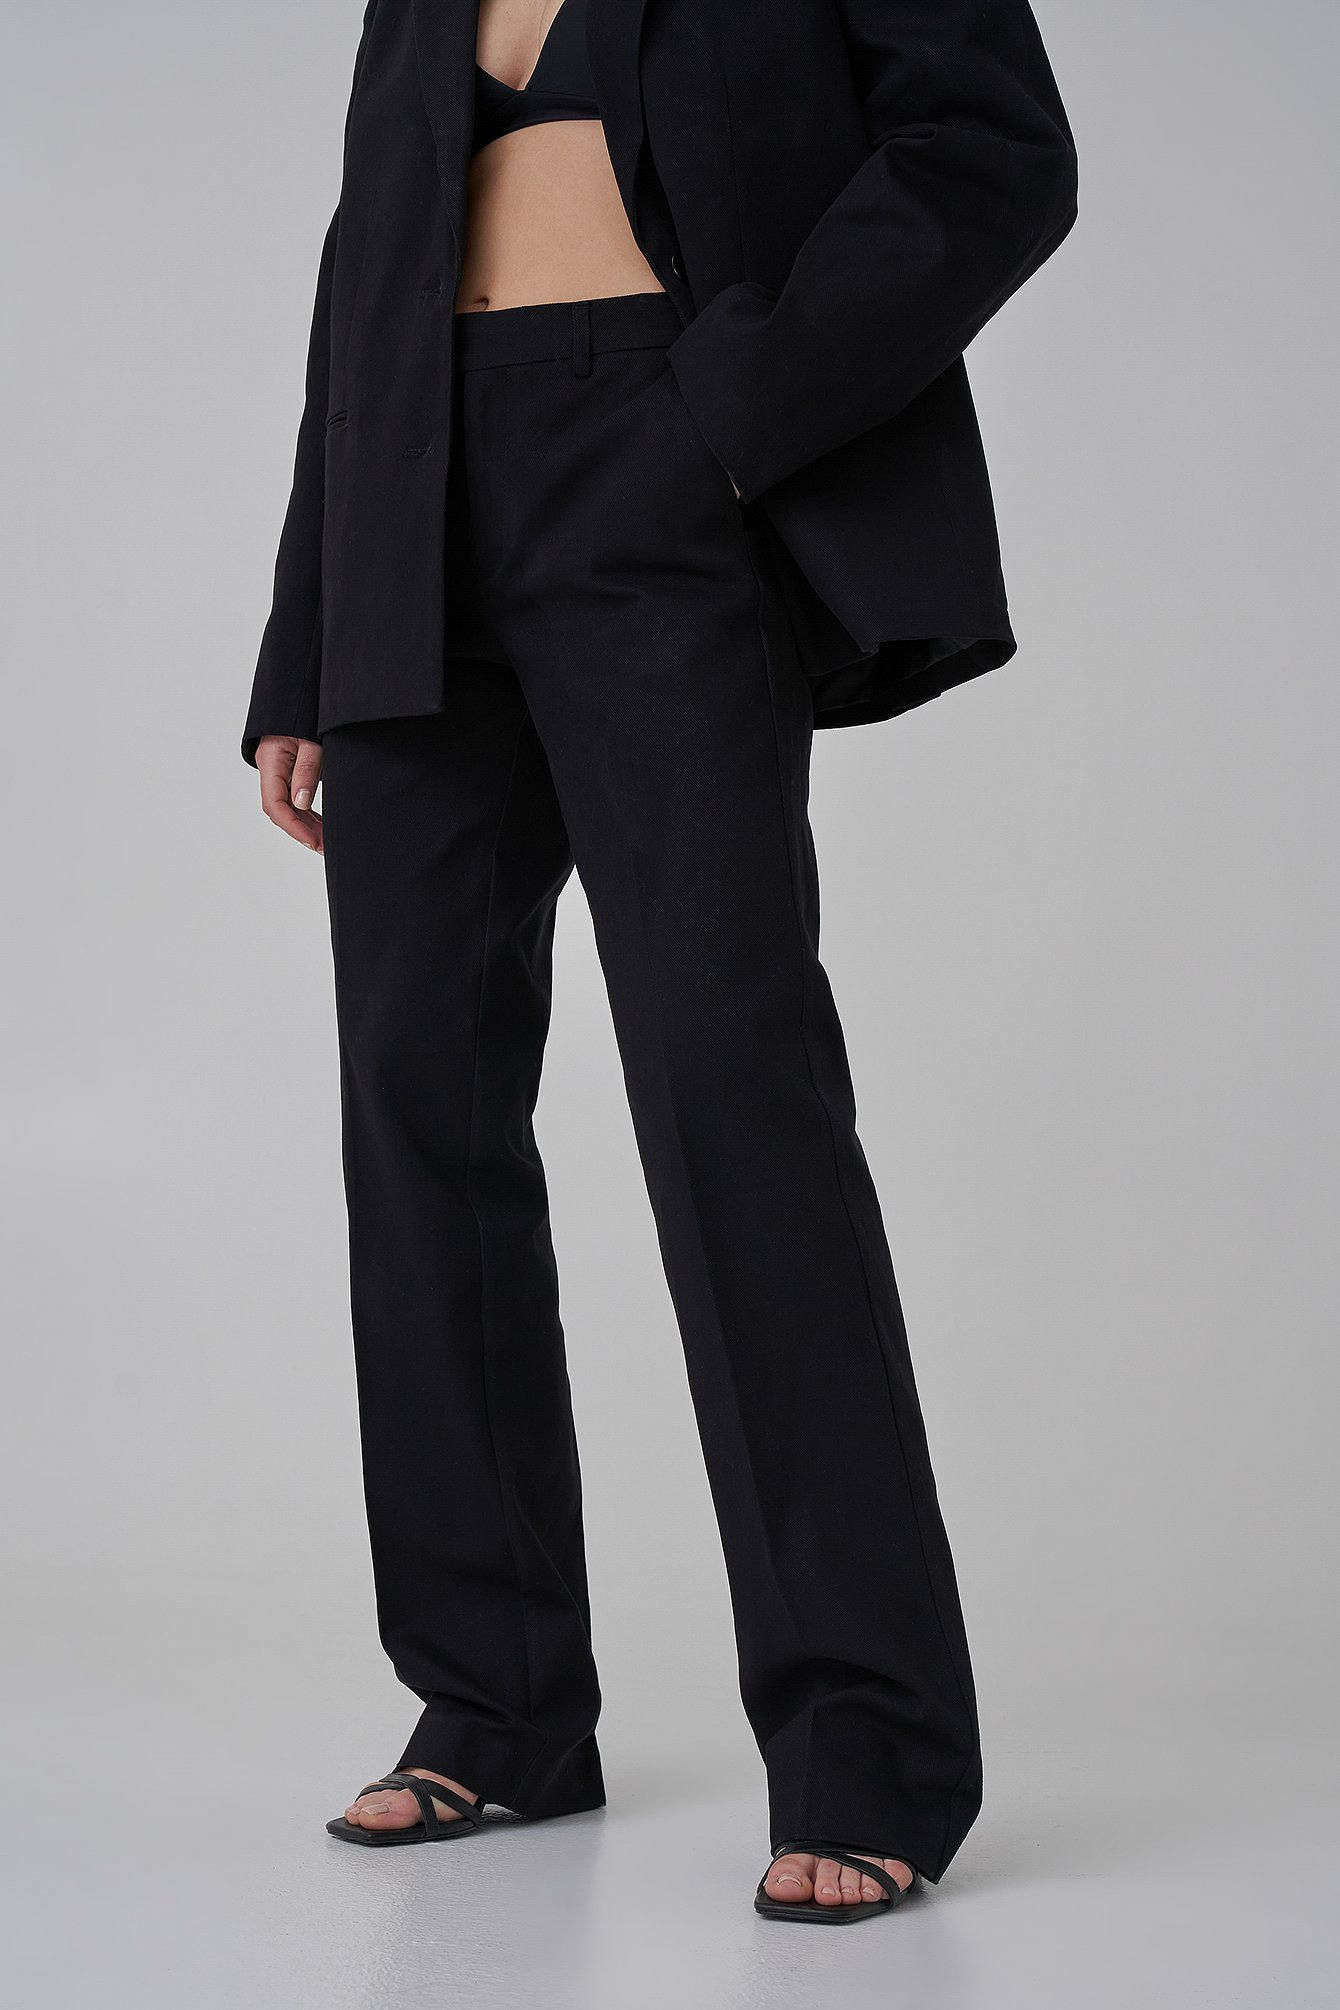 Black Long Leg Twill Suitpants